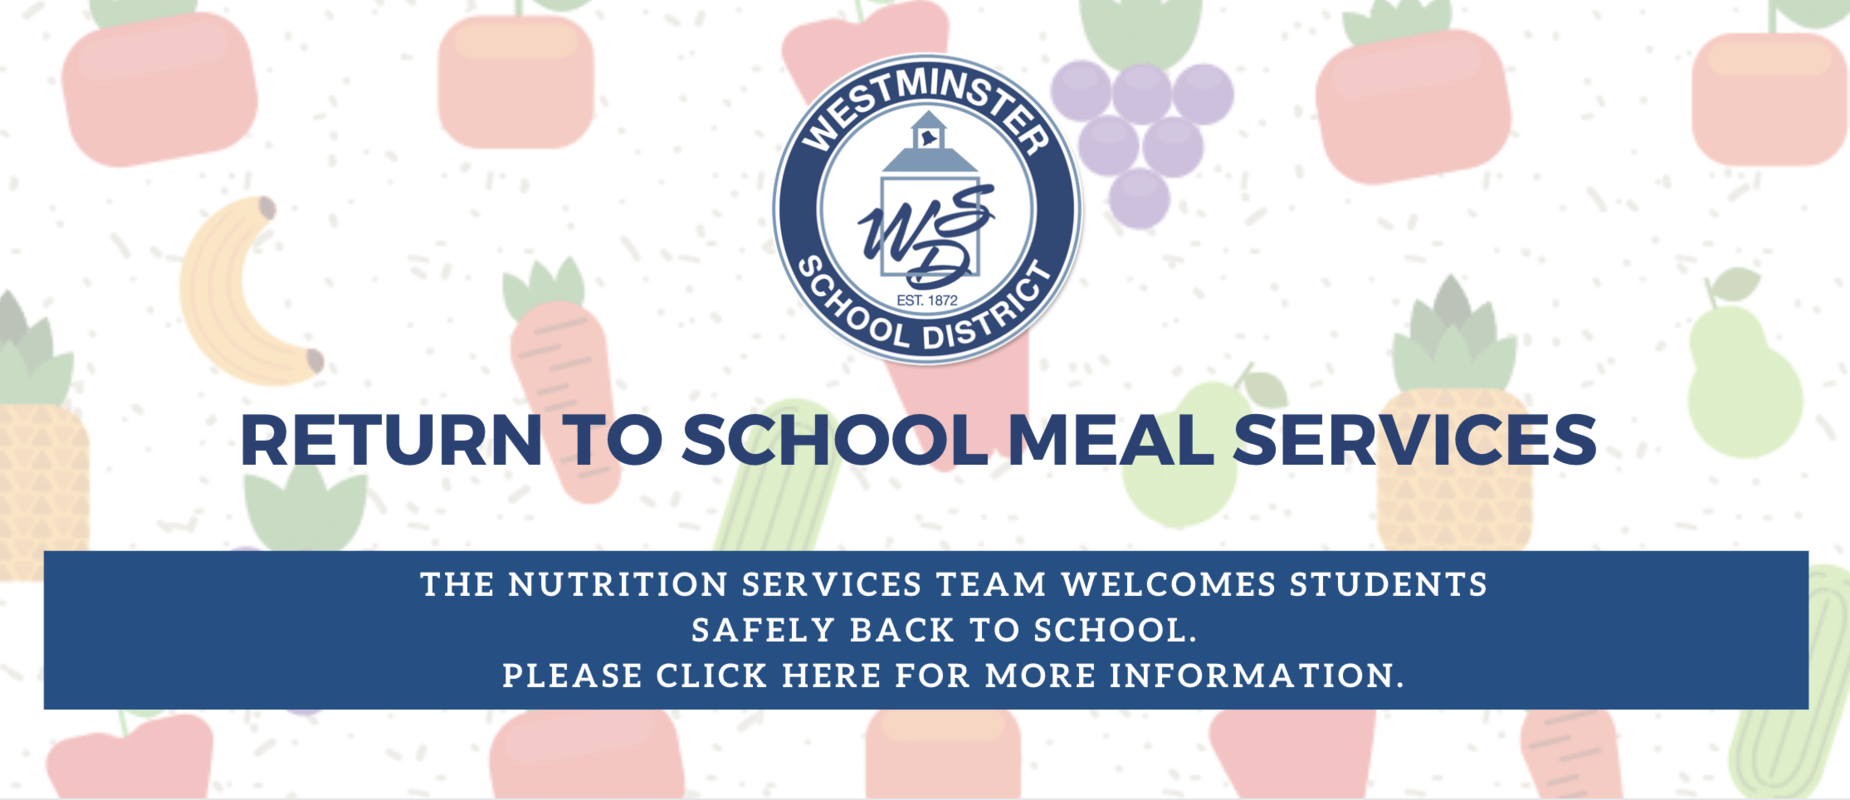 2020 2021 Return to School Meal Services Information